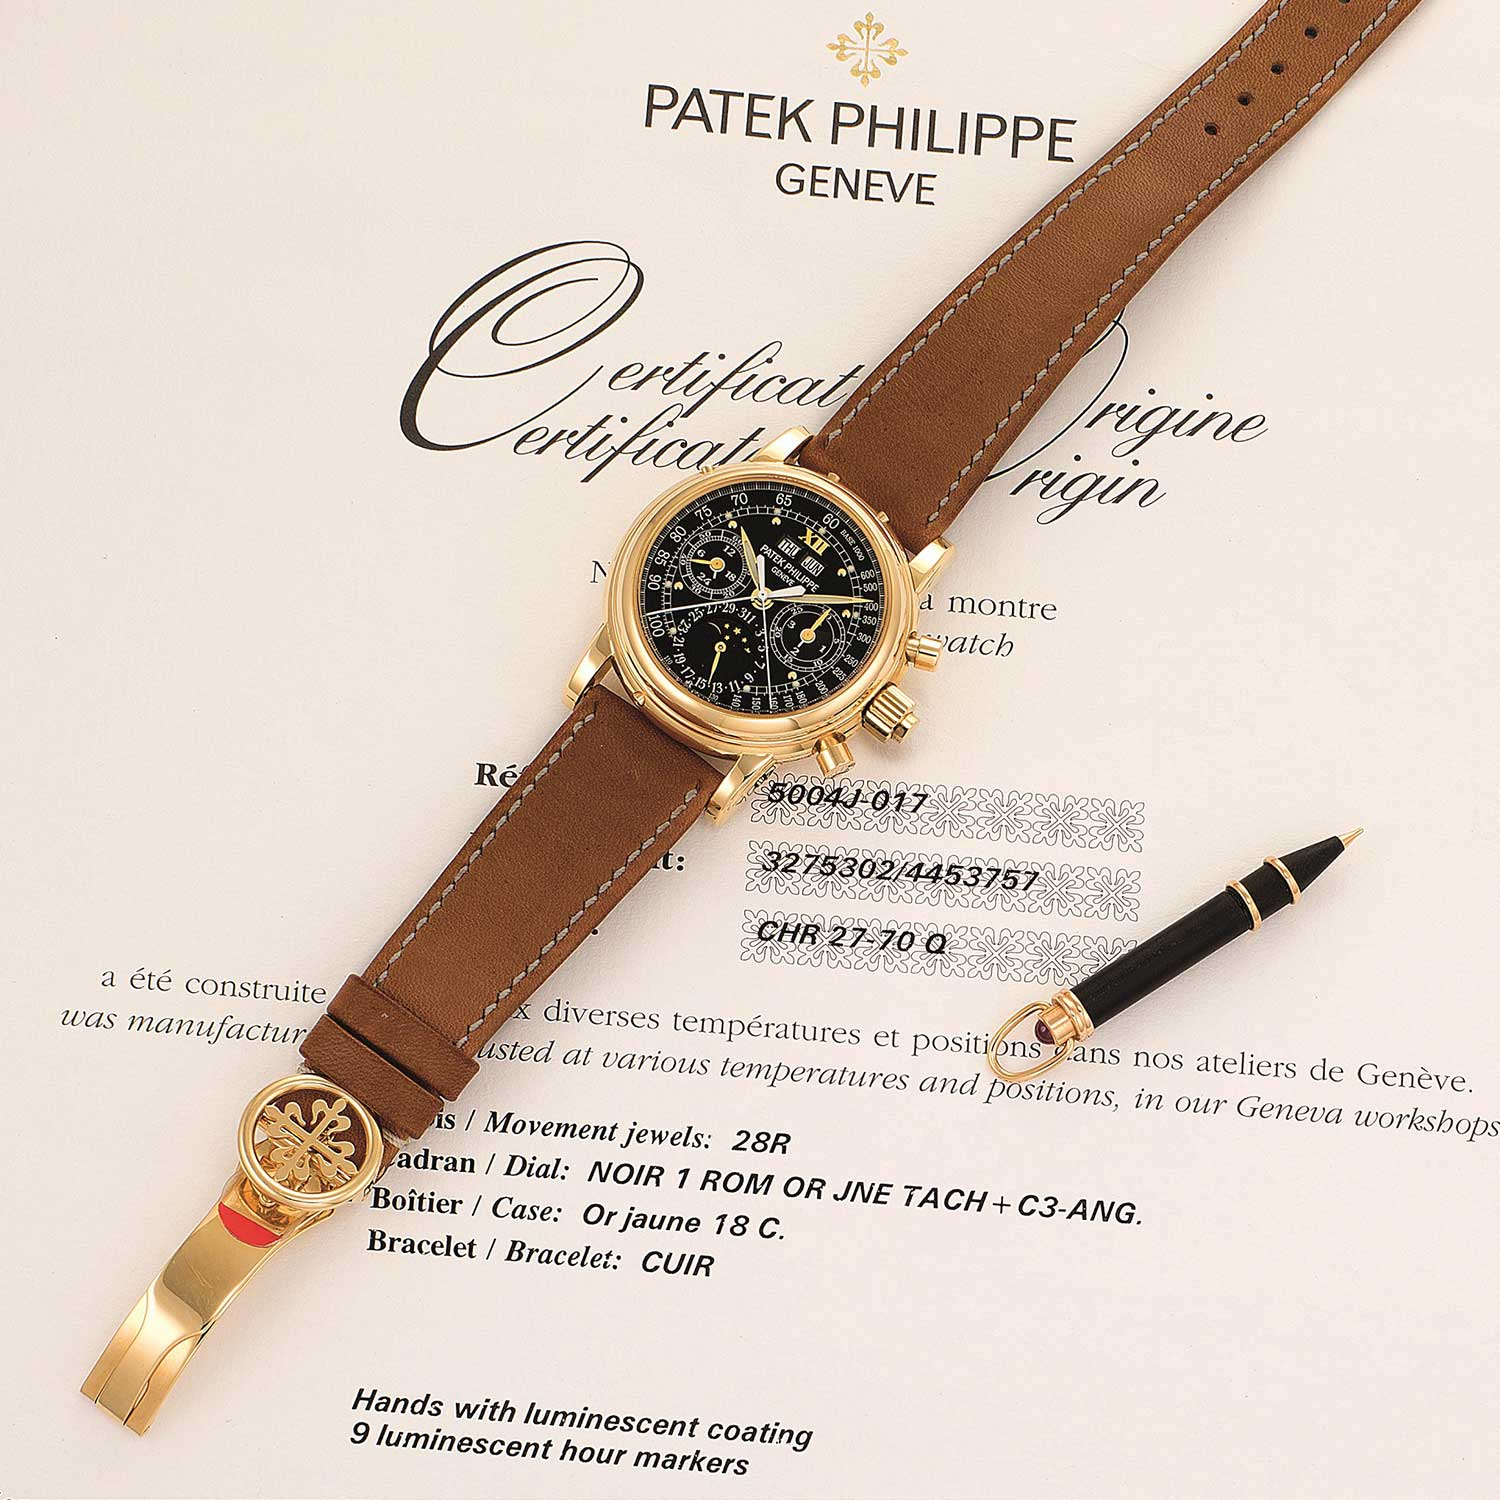 Certificate of Authenticity directly from Patek Philippe on the 5004J-017 (Image: phillips.com)